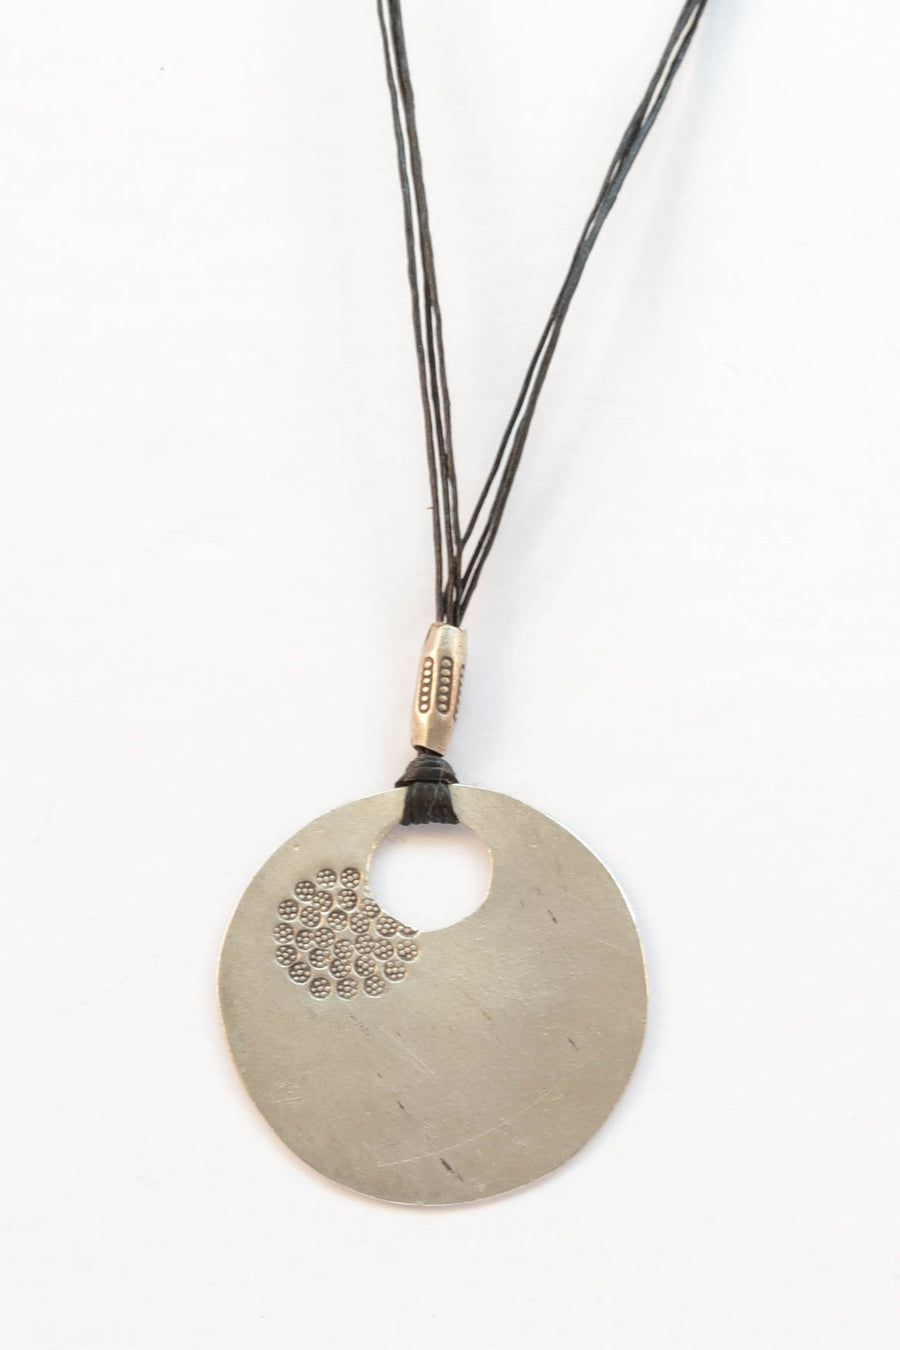 Rustic Floral Stamped Necklace - Sterling Silver